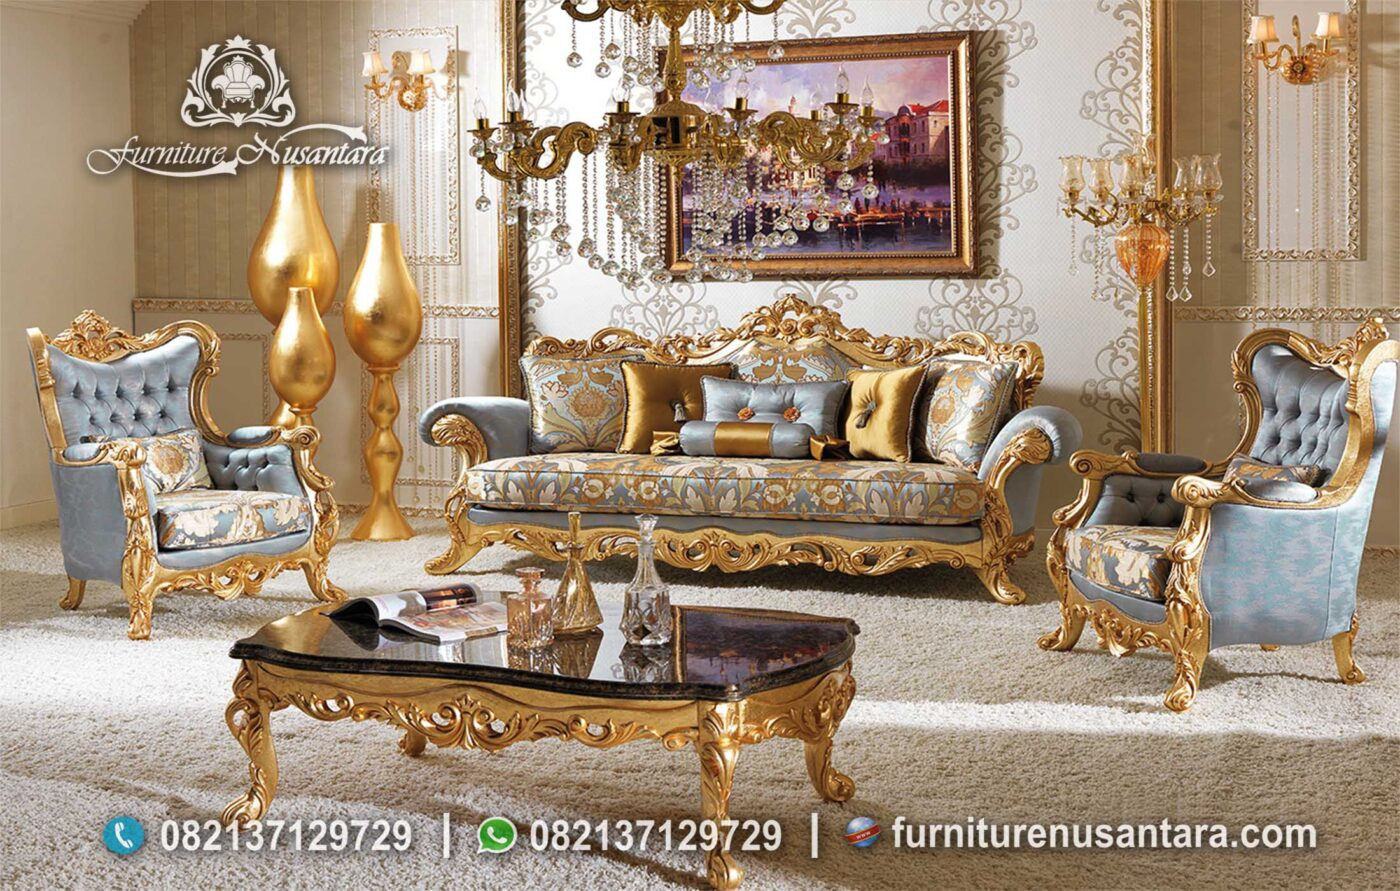 Sofa Luxury Warna Goald Termewah ST-71, Furniture Nusantara